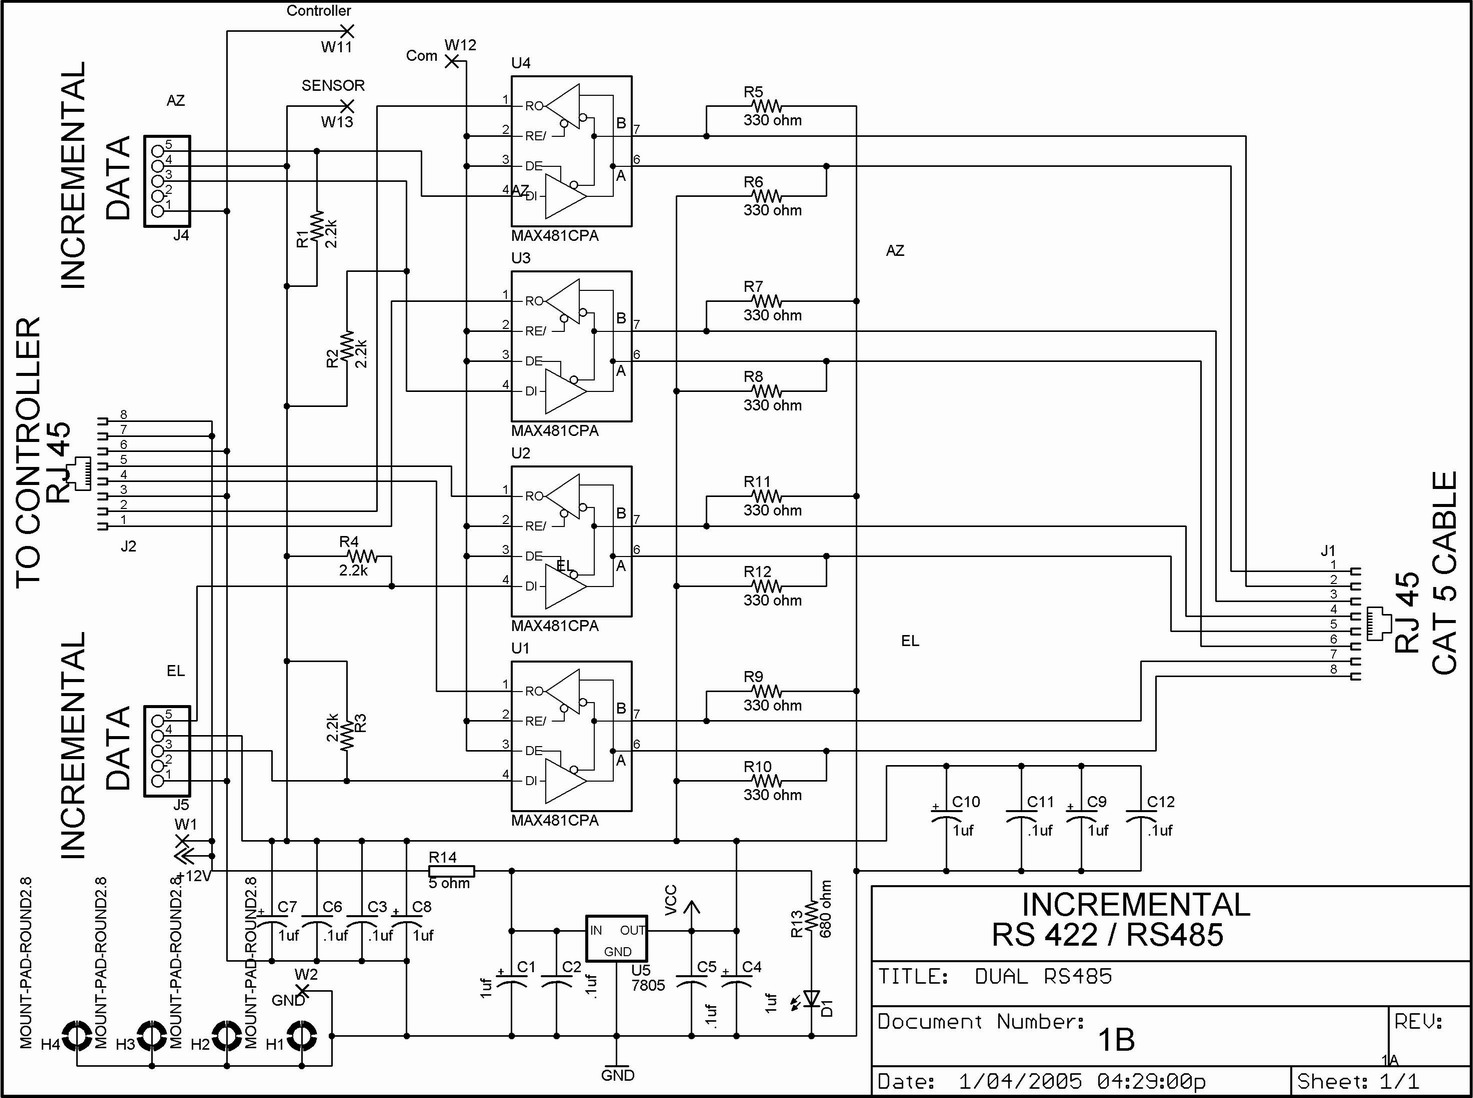 rj11 socket wiring diagram with Rs485 To Rj45 Wiring Diagram on Telephone Wiring Diagrams further Cat5 Rj45 Socket Wiring Diagram in addition Rj45 Socket Wiring Diagram Uk likewise Telephone Socket Wiring Diagram furthermore Wiring Diagram For Power Window.